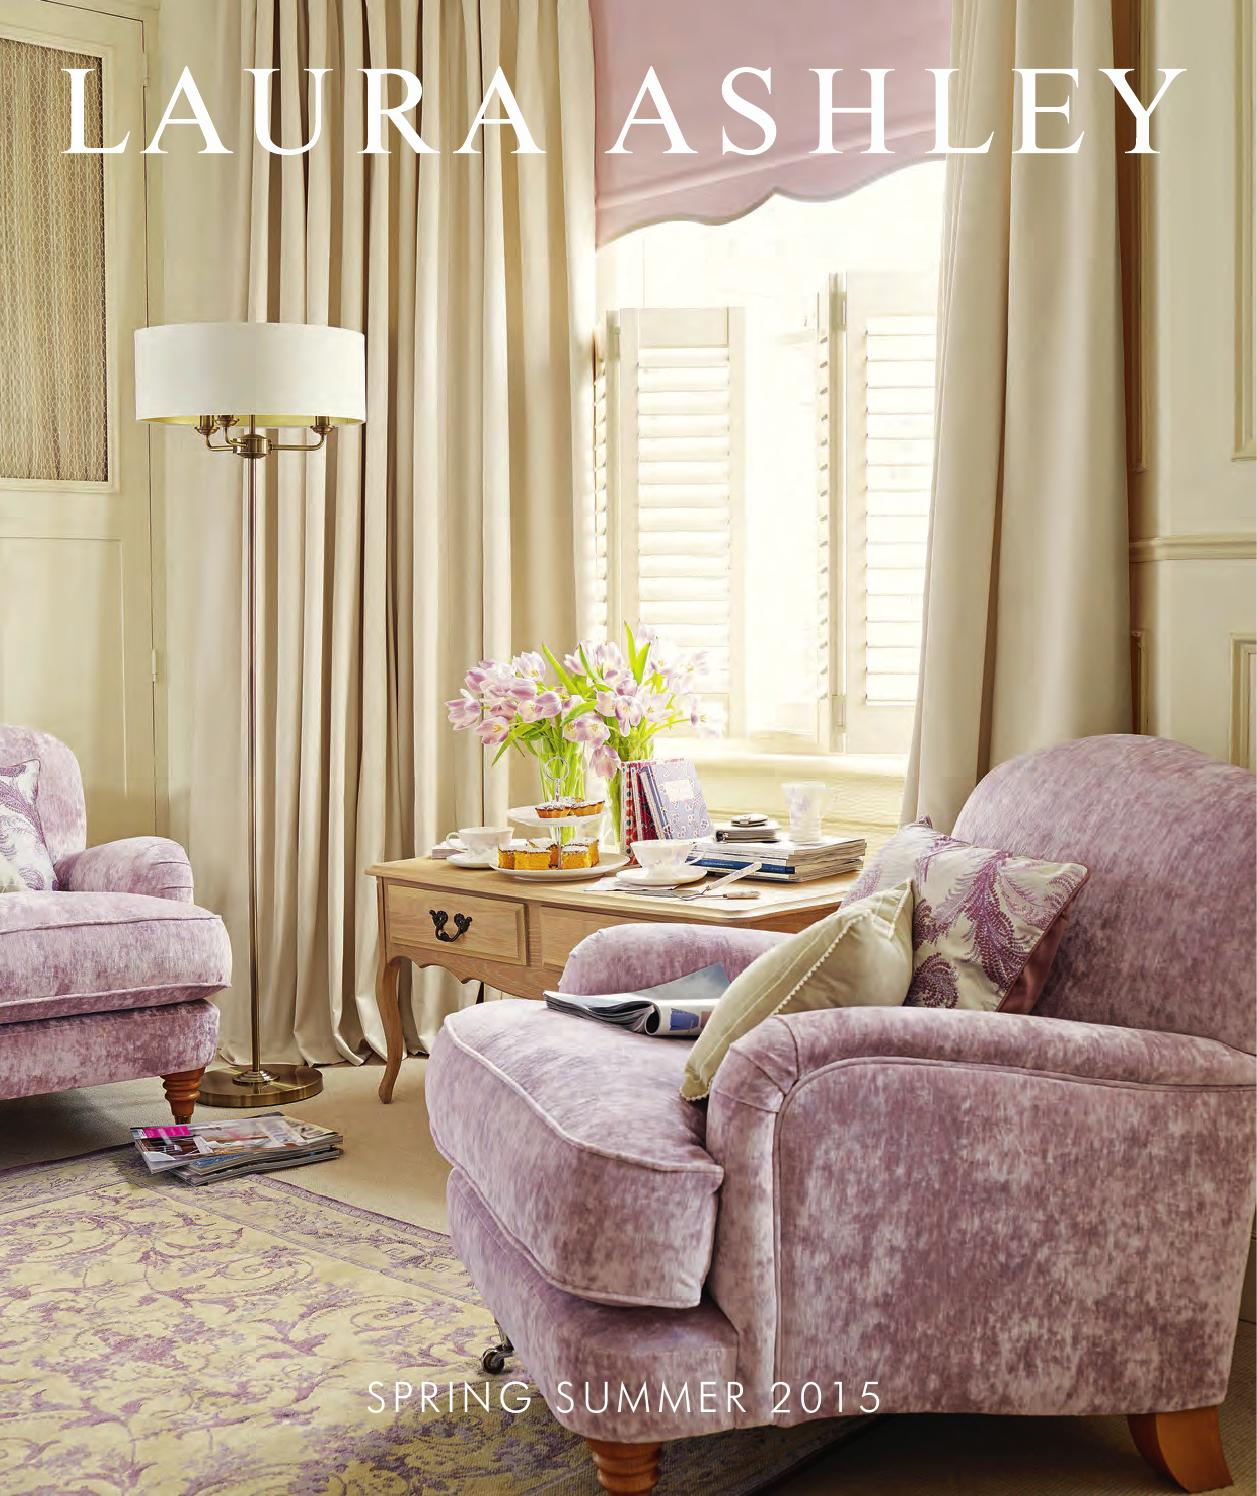 LAURA ASHLEY Spring Summer 2015 Catalogue by Stanislav ...